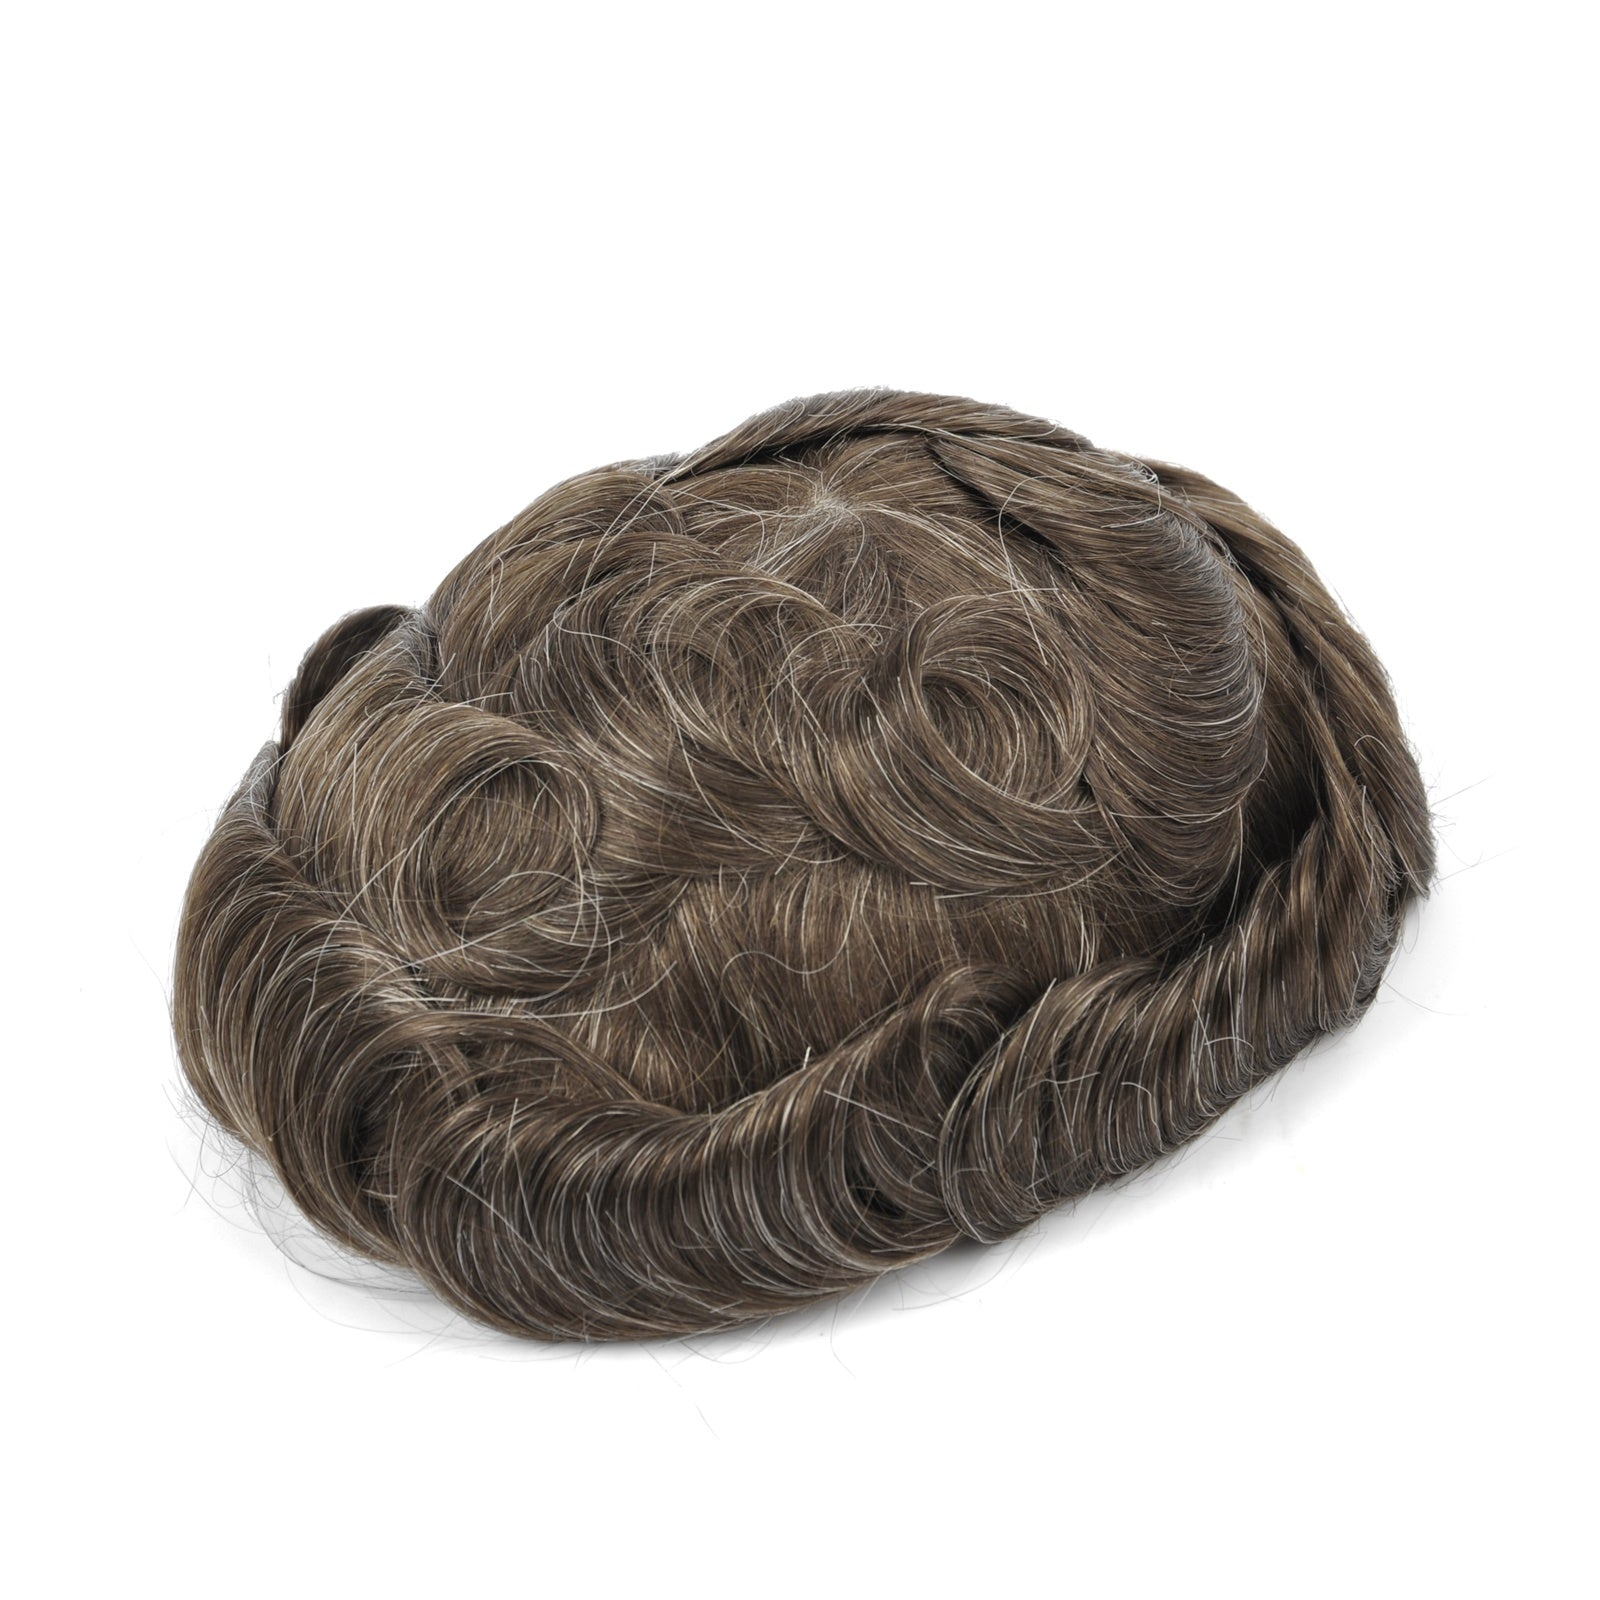 5206b5c78b3 GEX Mens Toupee Hairpiece Swiss Lace Hair Systems 520#